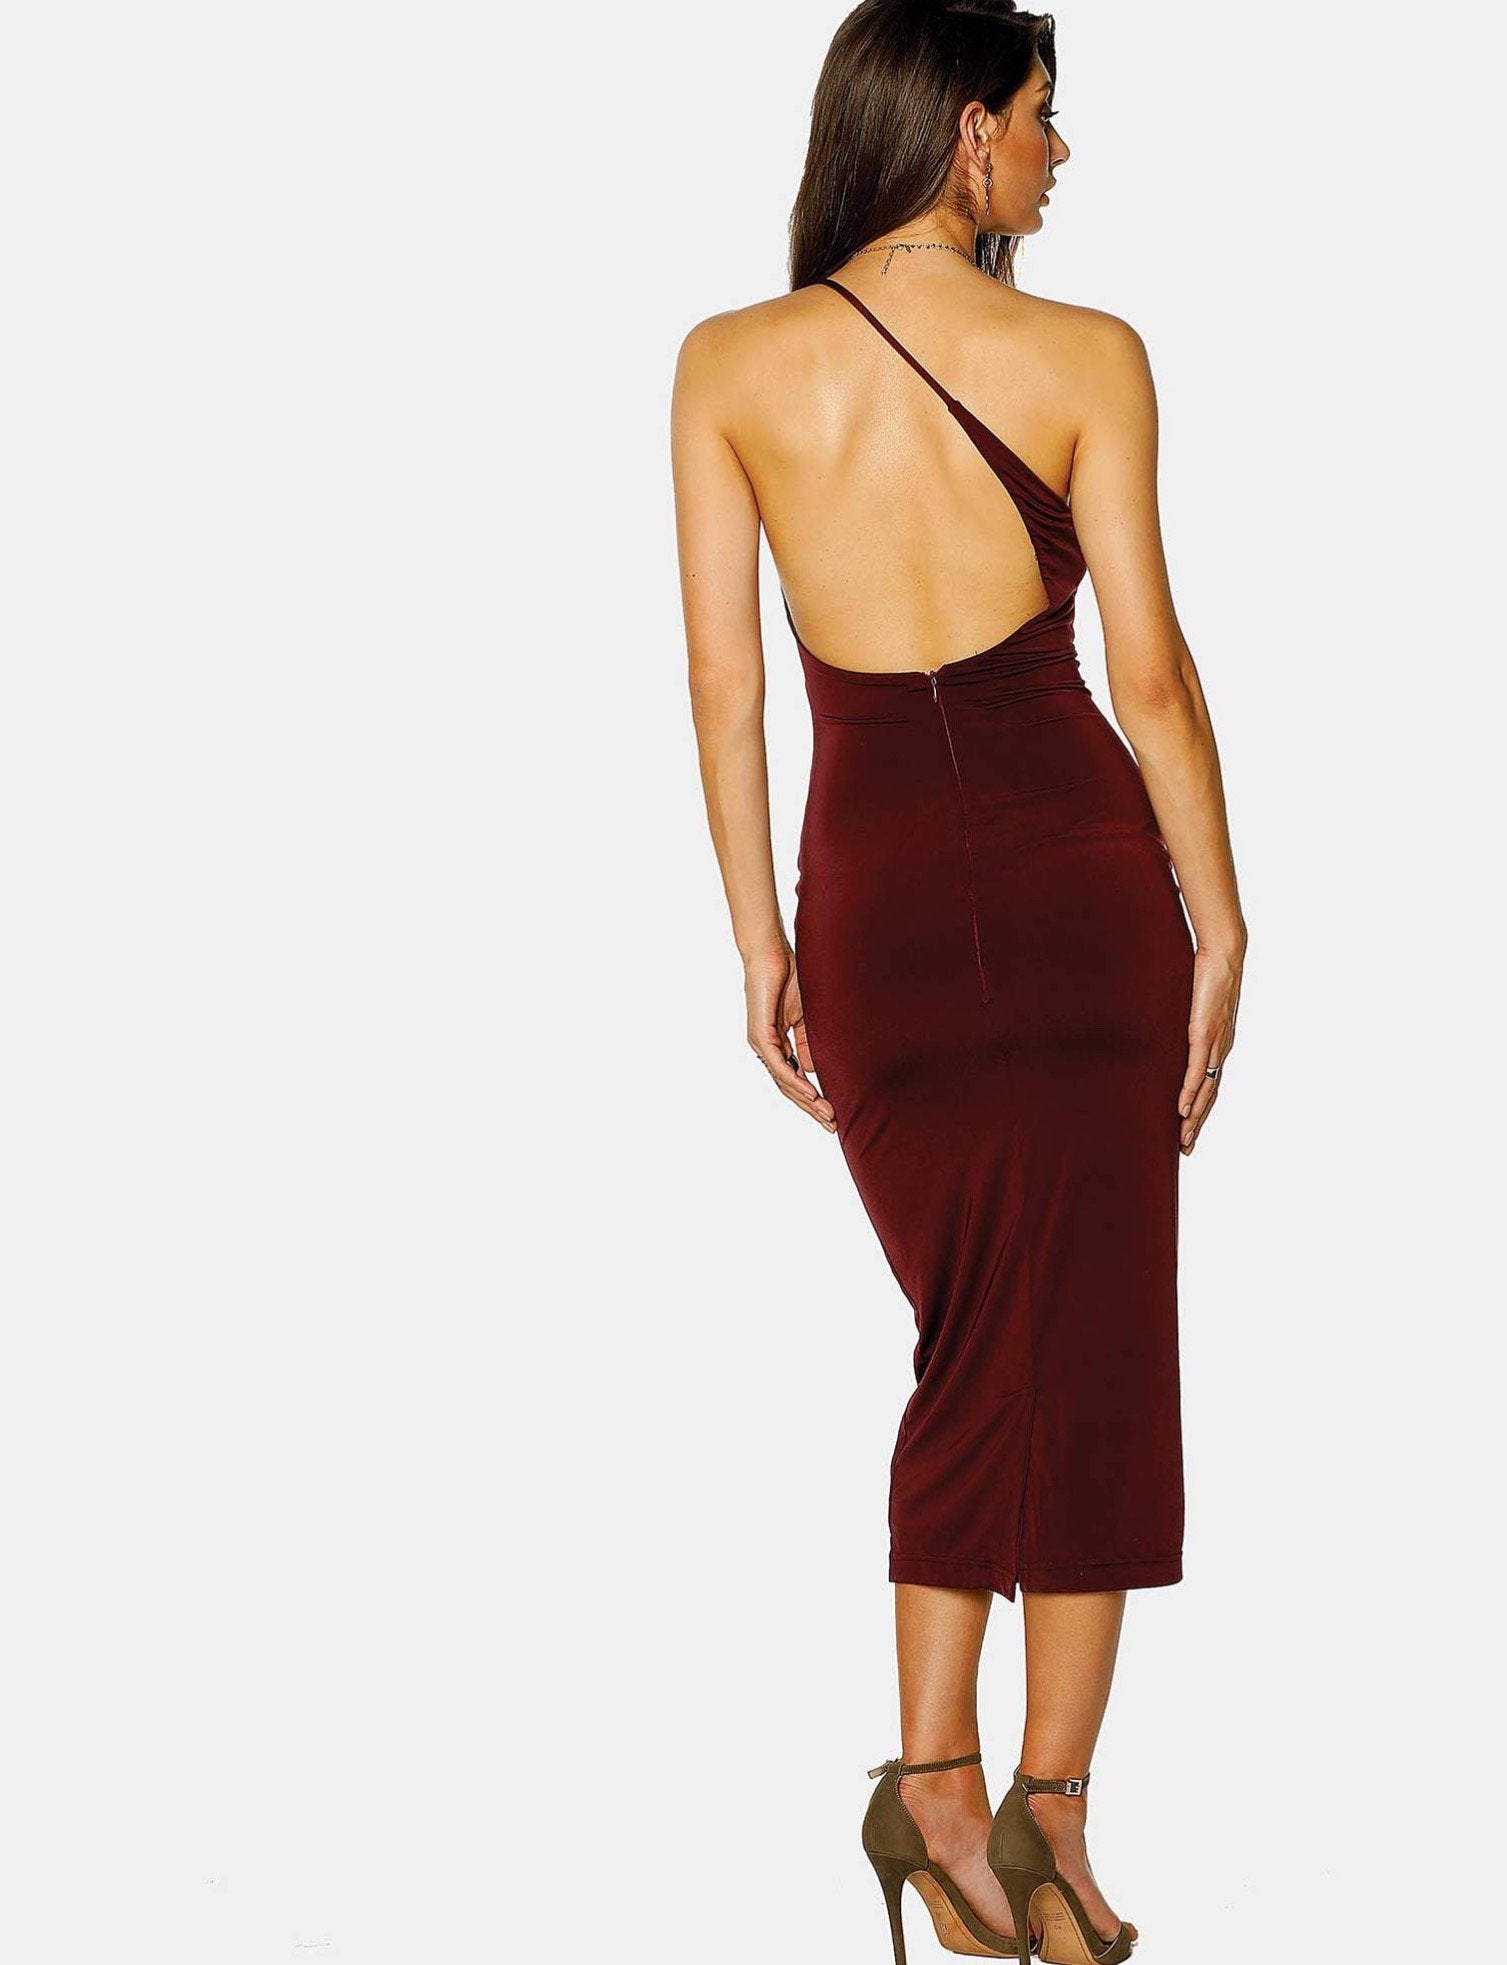 Pasduchas Bae Sexy Bodycon Midi Dress in Deep Wine-Lookbook Boutique